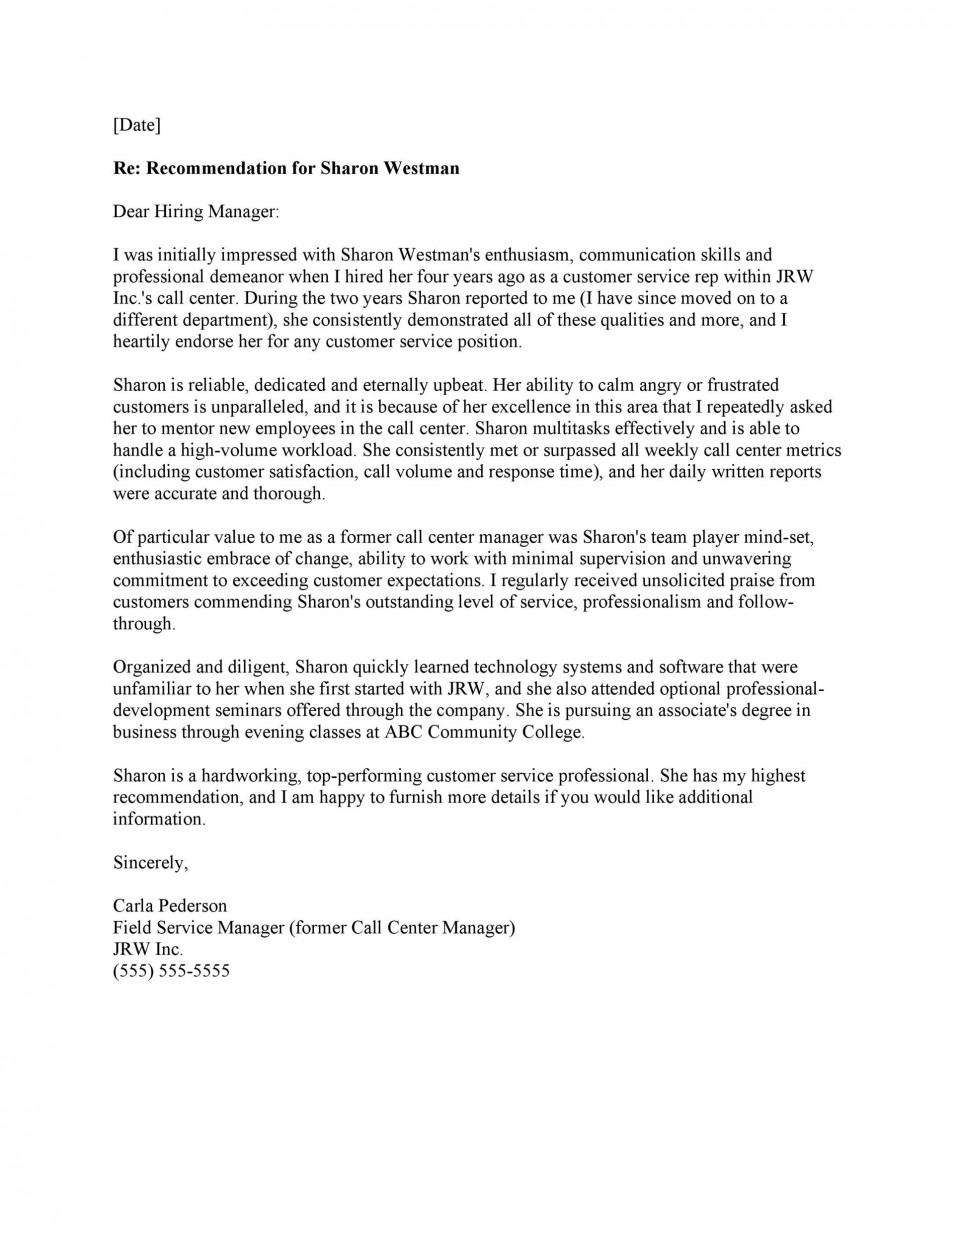 007 Fearsome Professional Reference Letter Template Inspiration  Nursing Free Character960